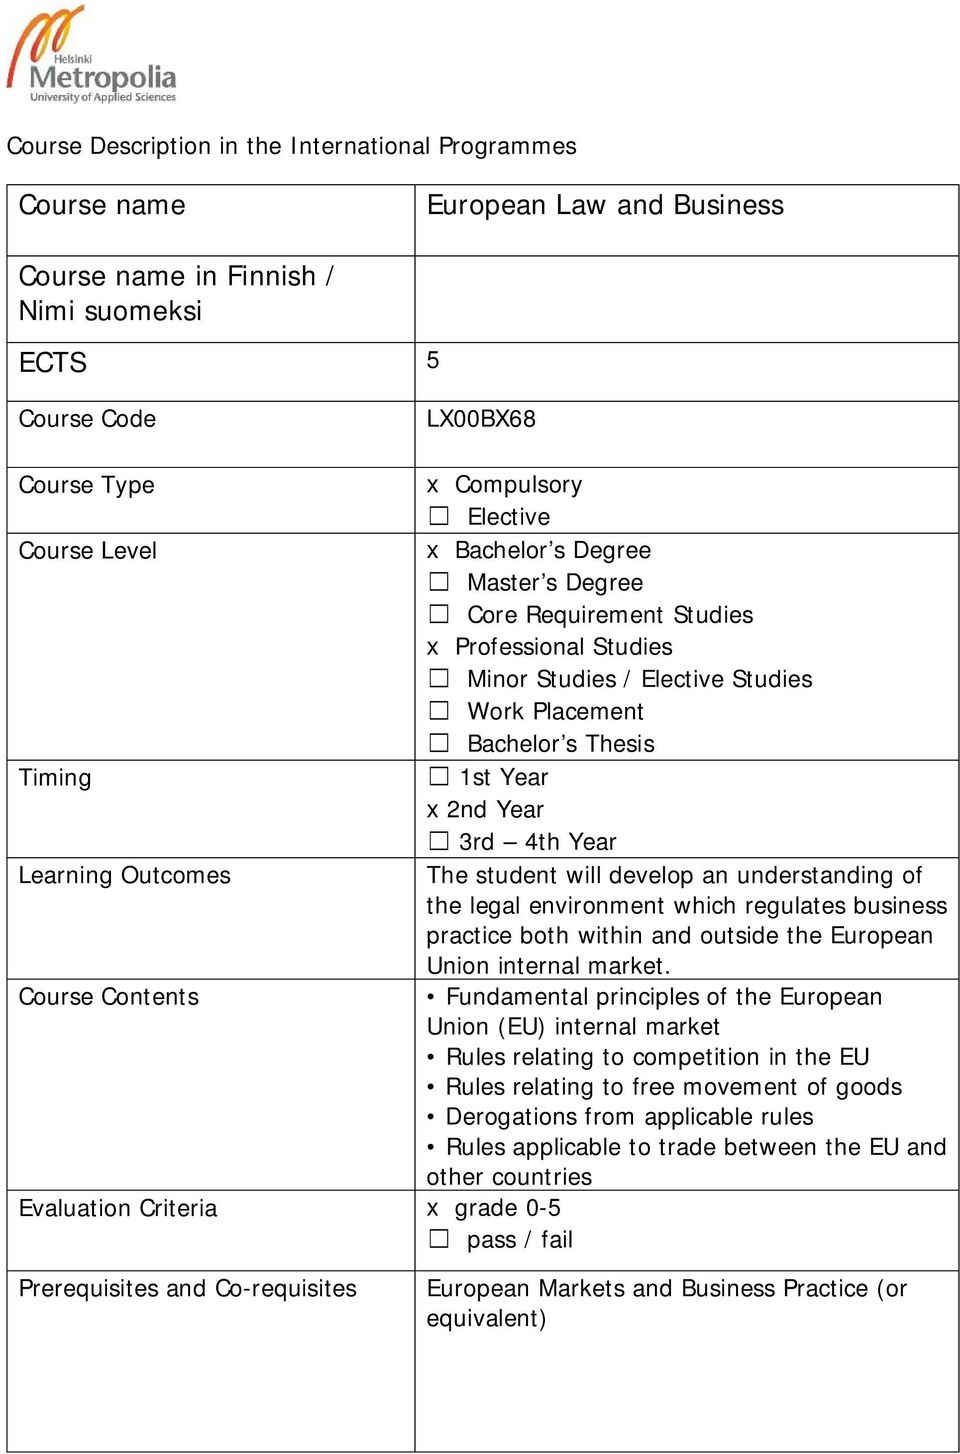 Learning Outcomes The student will develop an understanding of the legal environment which regulates business practice both within and outside the European Union internal market.